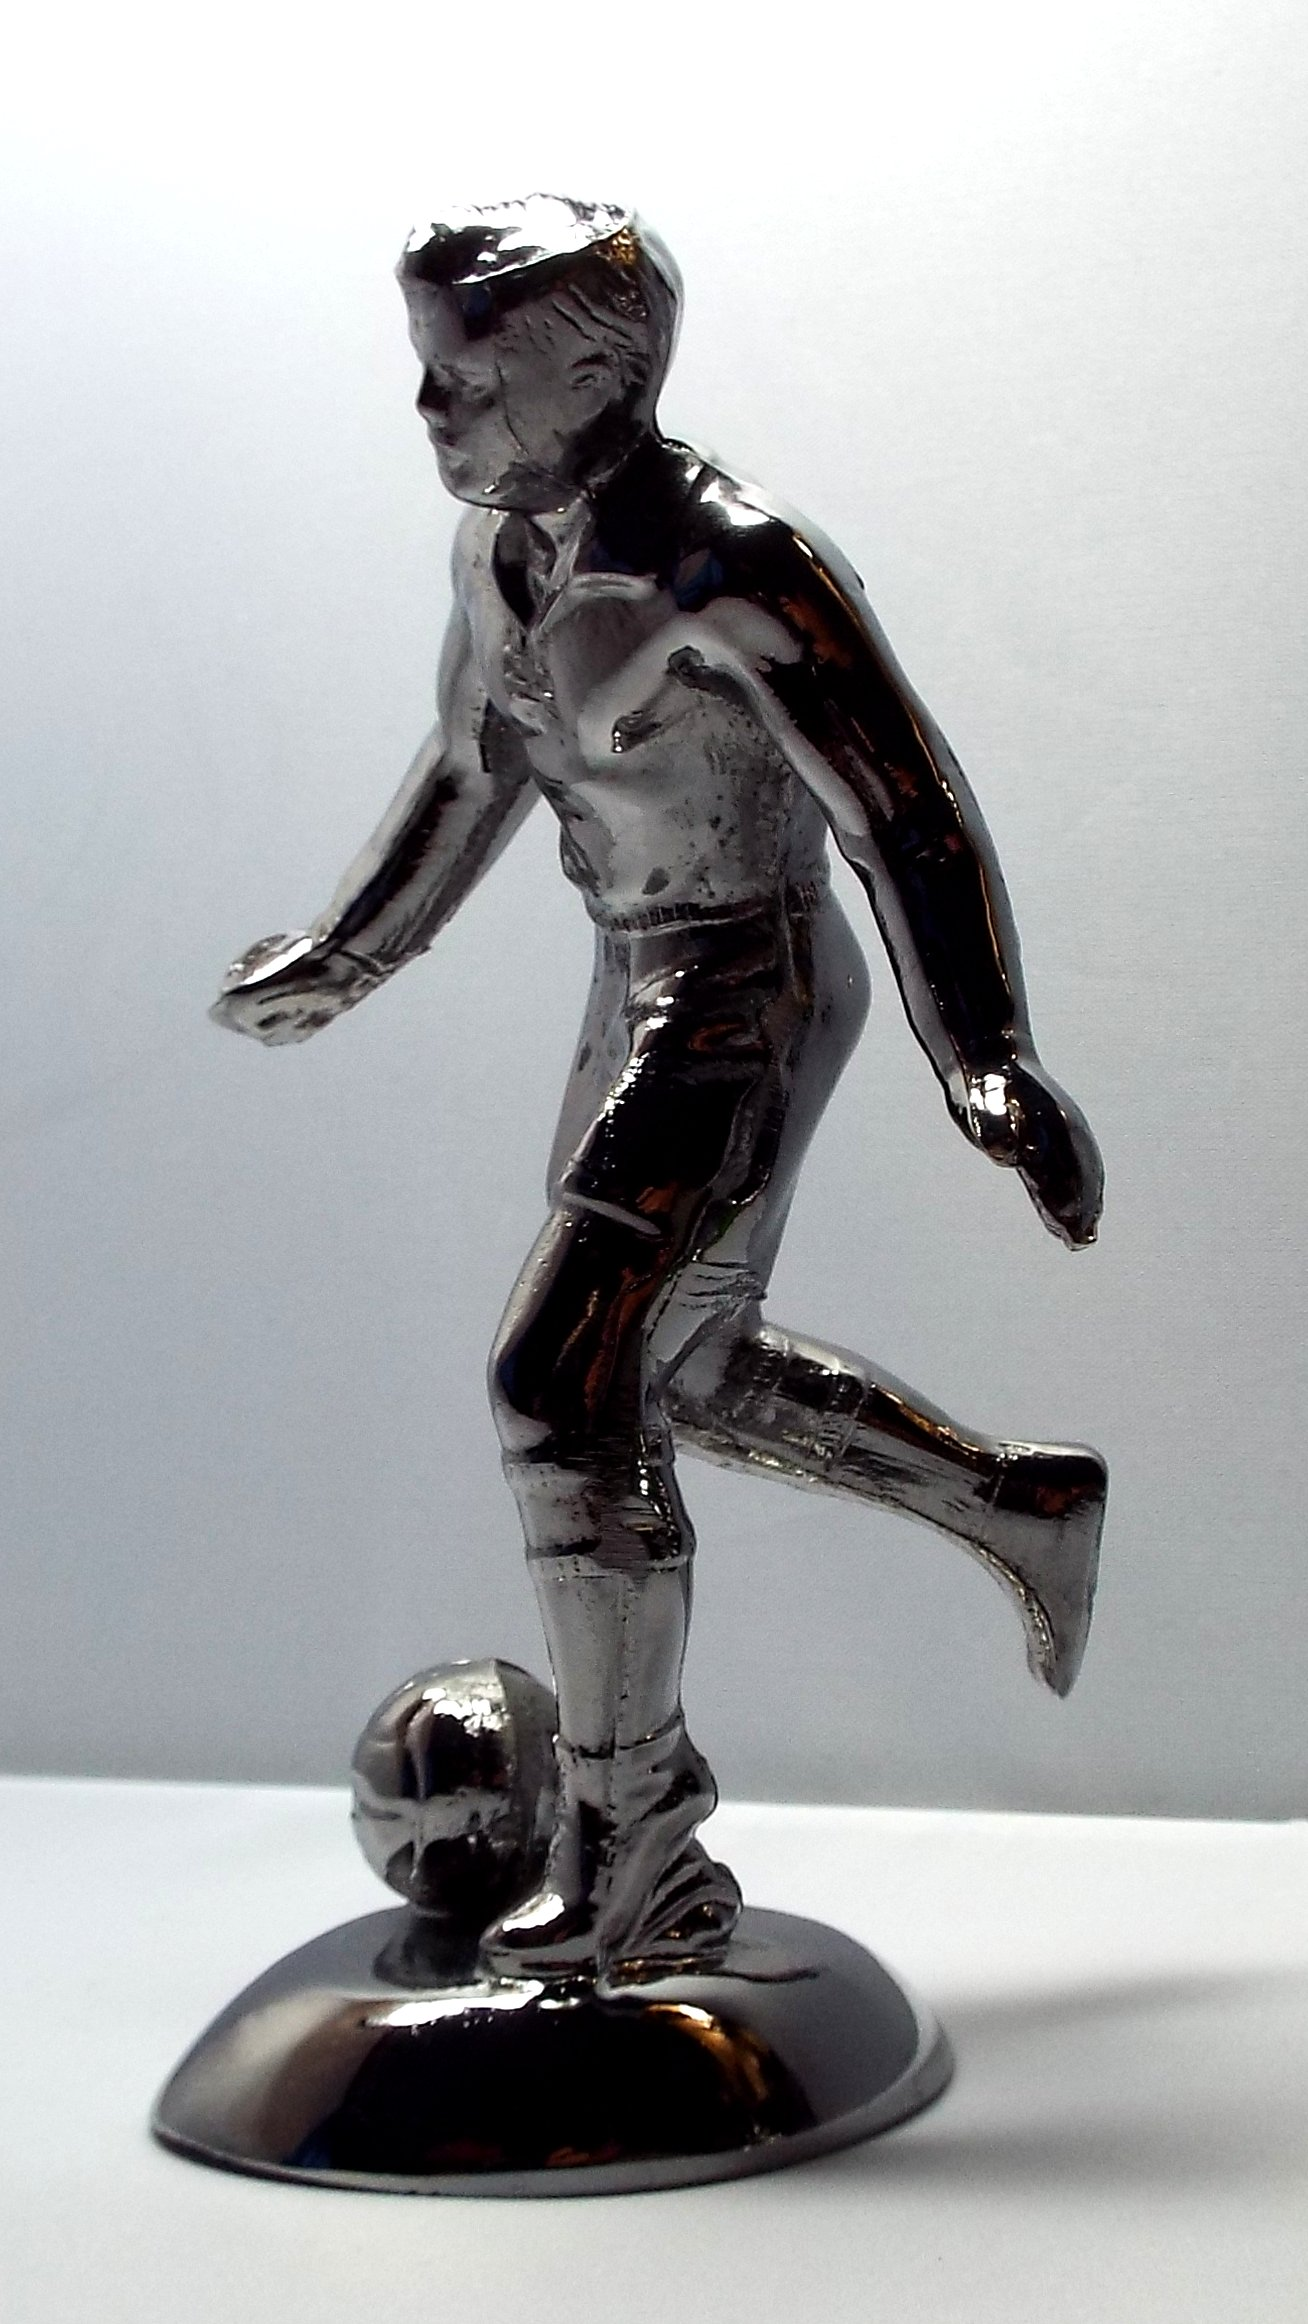 Soccer player / Footballer Bonnet Mascot-Chrome Plated